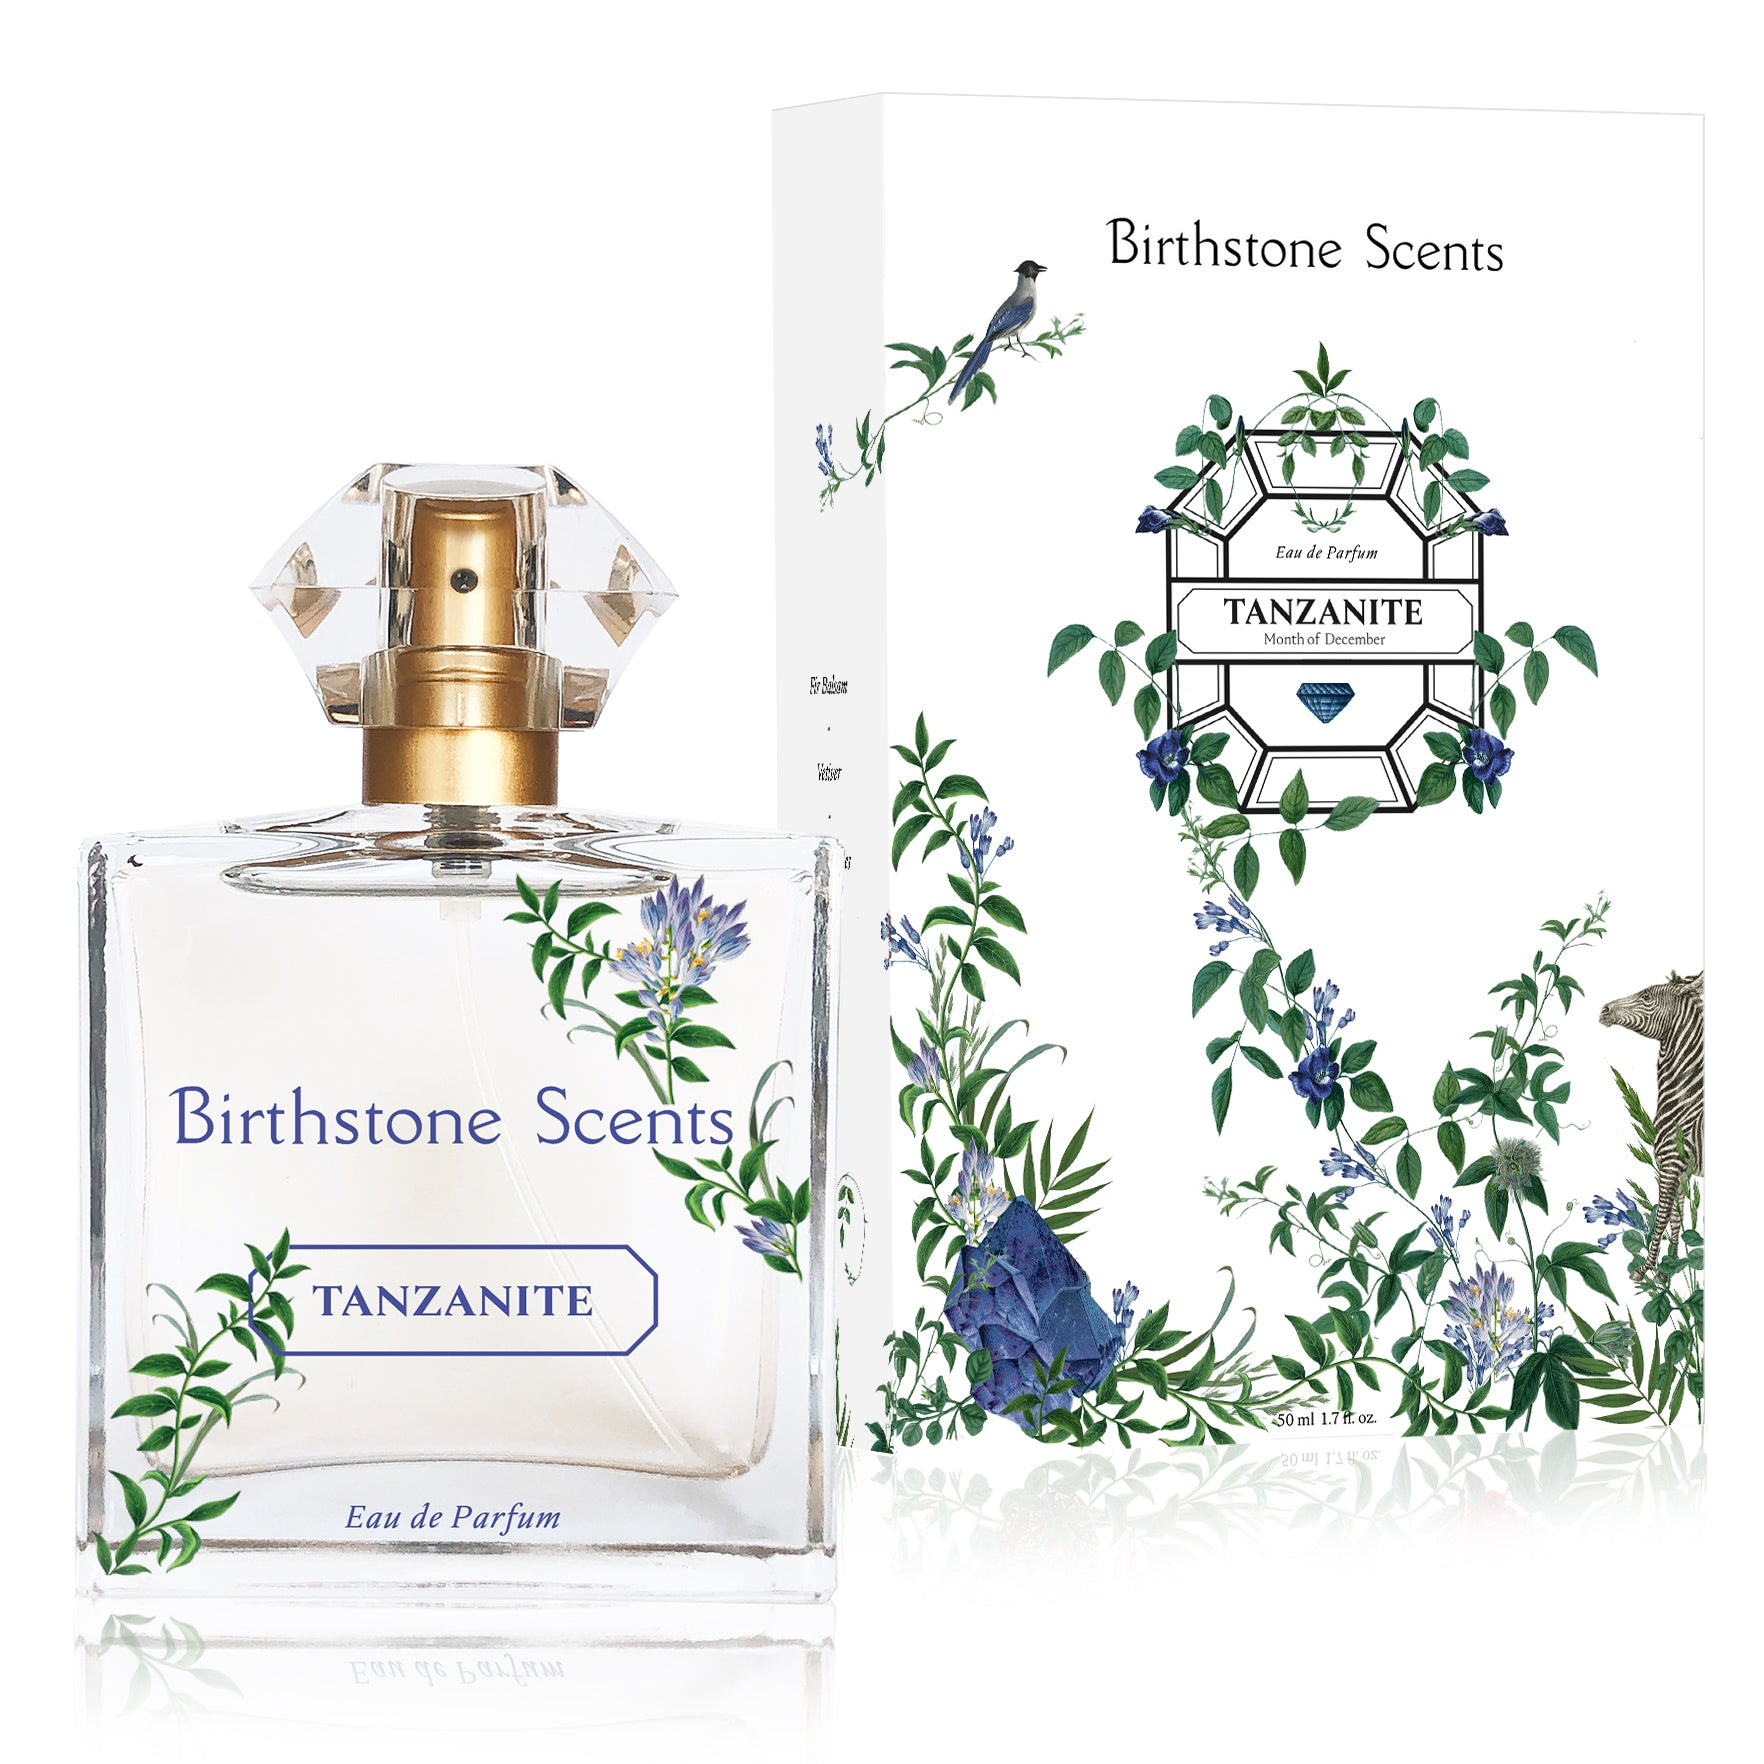 TANZANITE PERFUME WITH NECKLACE | December - Birthstone Scents